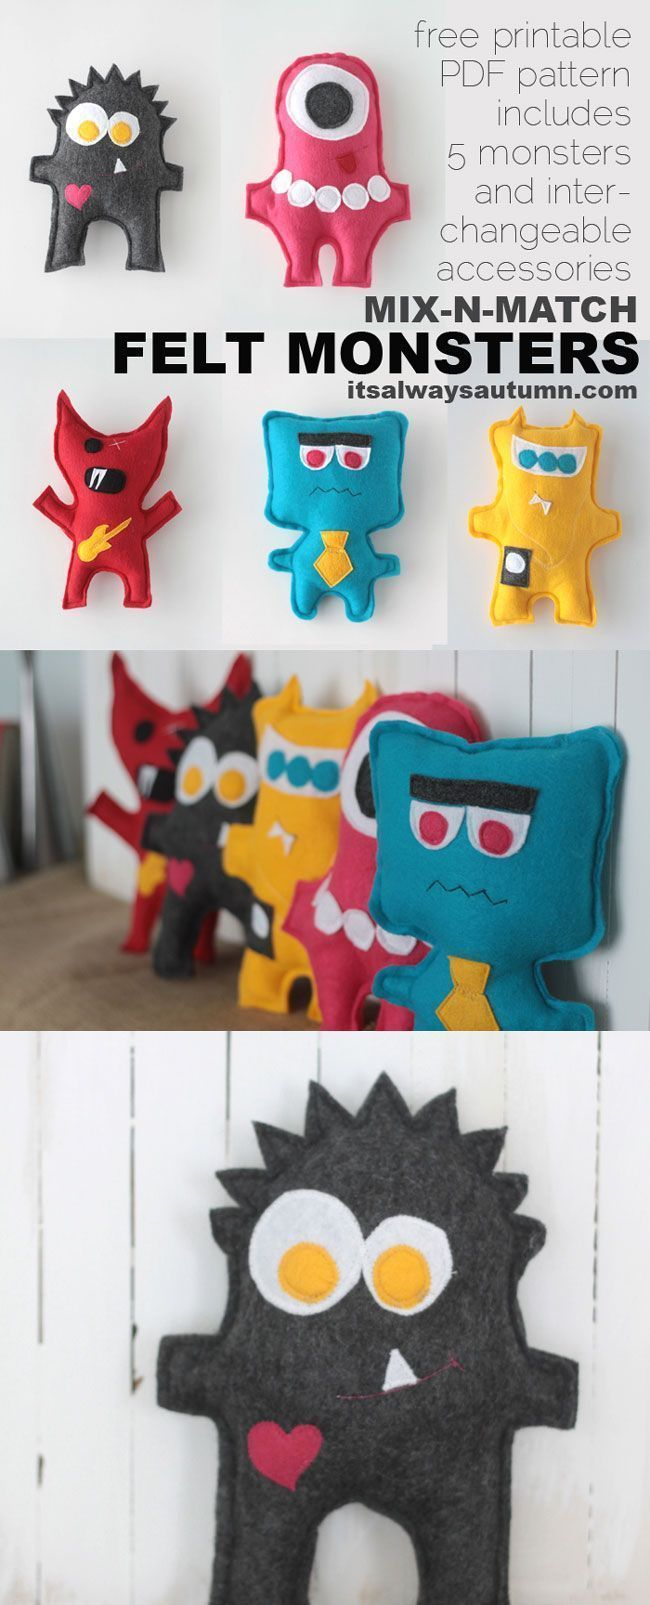 Make some adorable felt monsters with this free sewing pattern and tutorial. Great beginner sewing project for kids and fun summer activity! Get the felt monsters tutorial and the templates here. Get a weekly summary of new patterns sent to your inbox every Saturday